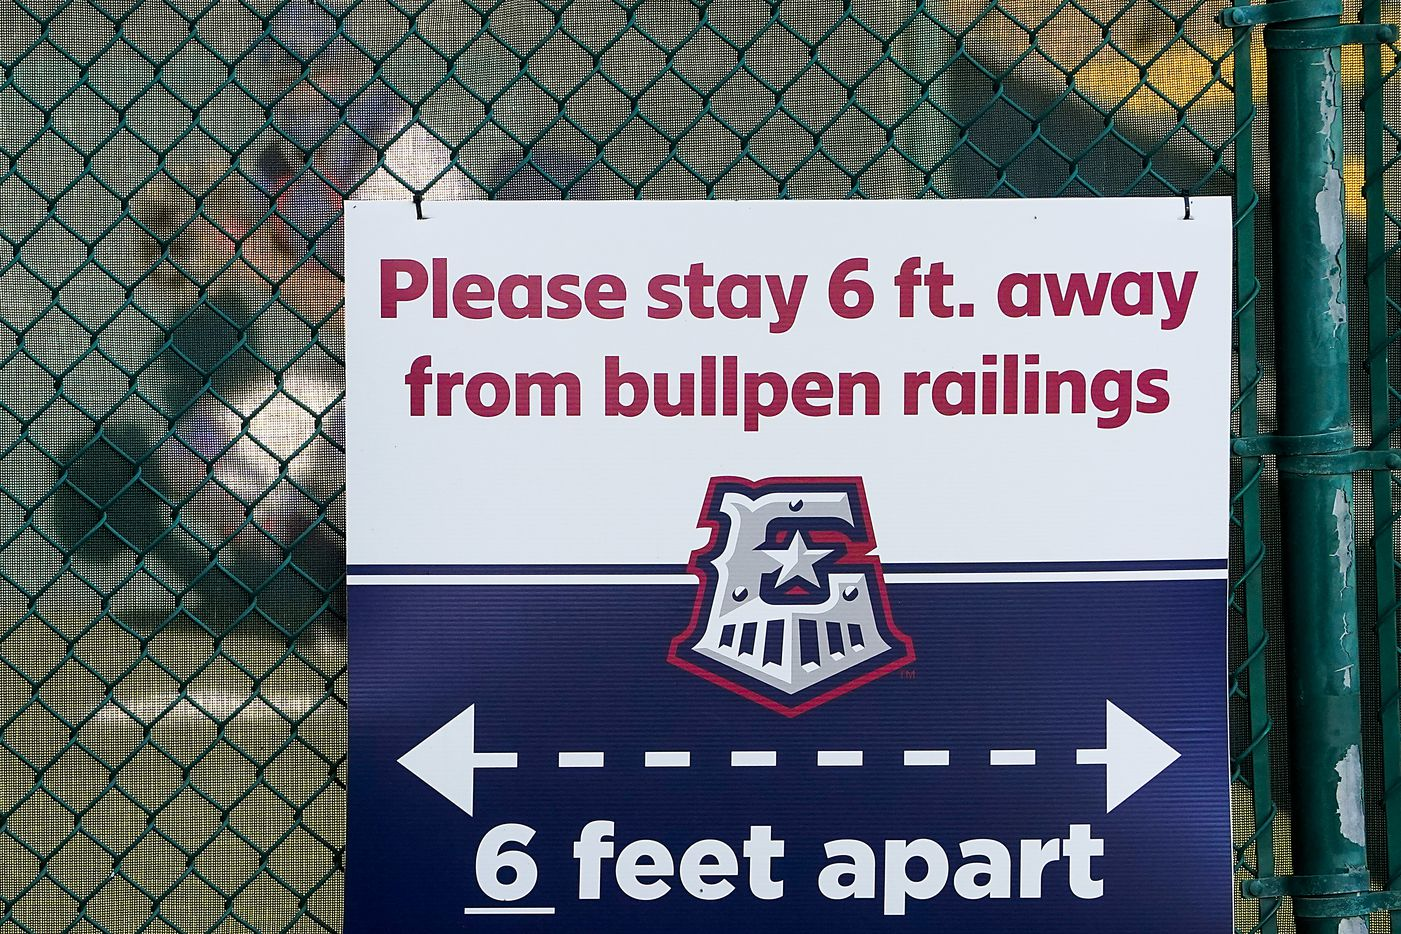 Signs at Dell Diamond encourage fans to keep social distancing from the bullpen before the Round Rock Express season opener against the Oklahoma City Dodgers on Thursday, May 6, 2021, in Round Rock, Texas. It was the first gamer for the Express in 601 days due to the COVID-19 pandemic.